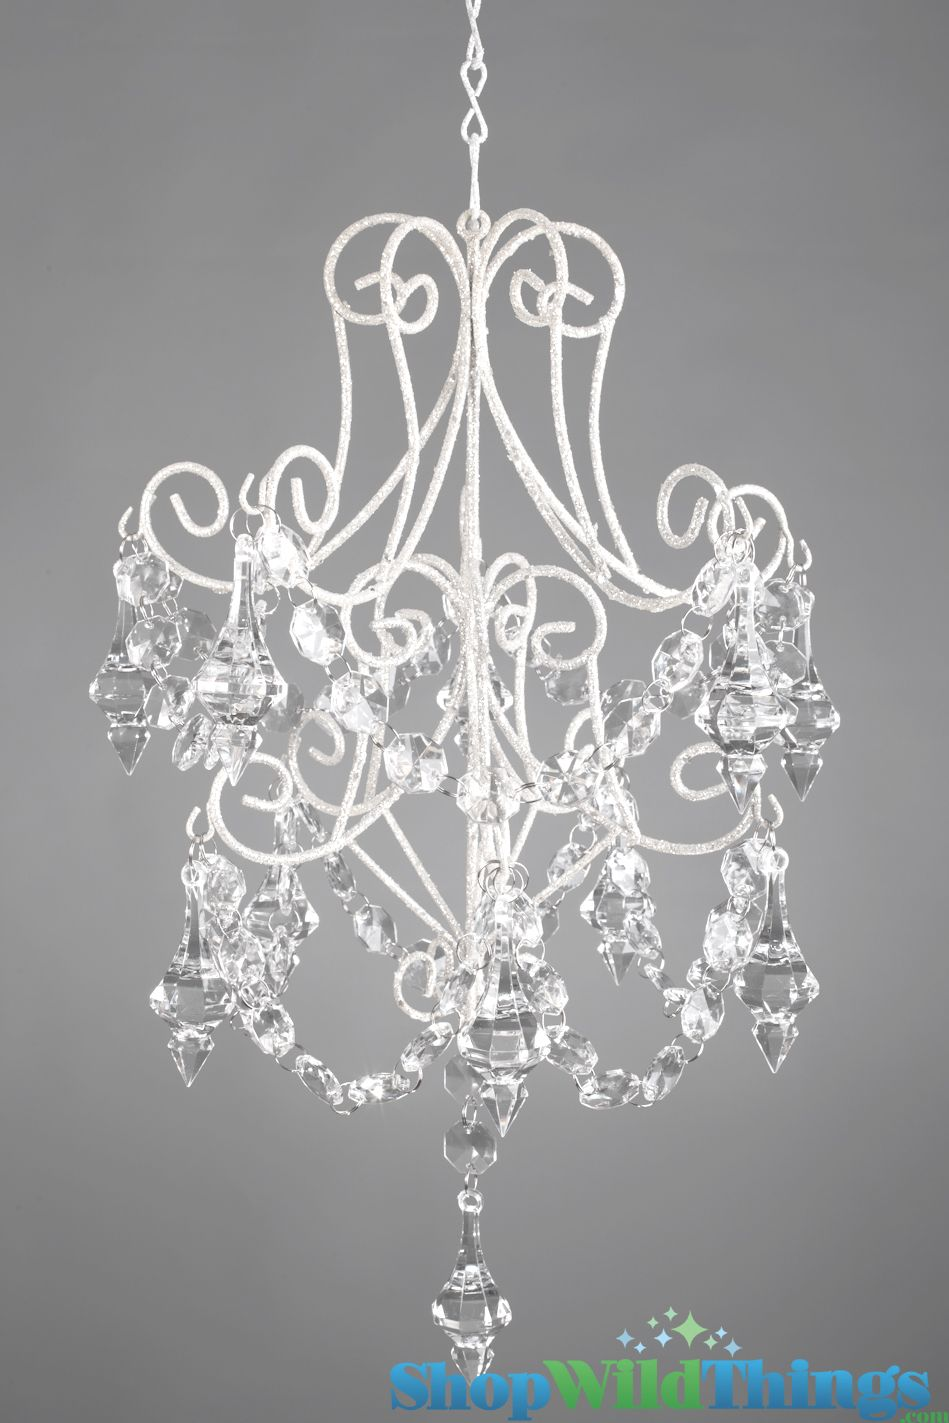 Create your very own chandelier decoration using our white metal ...